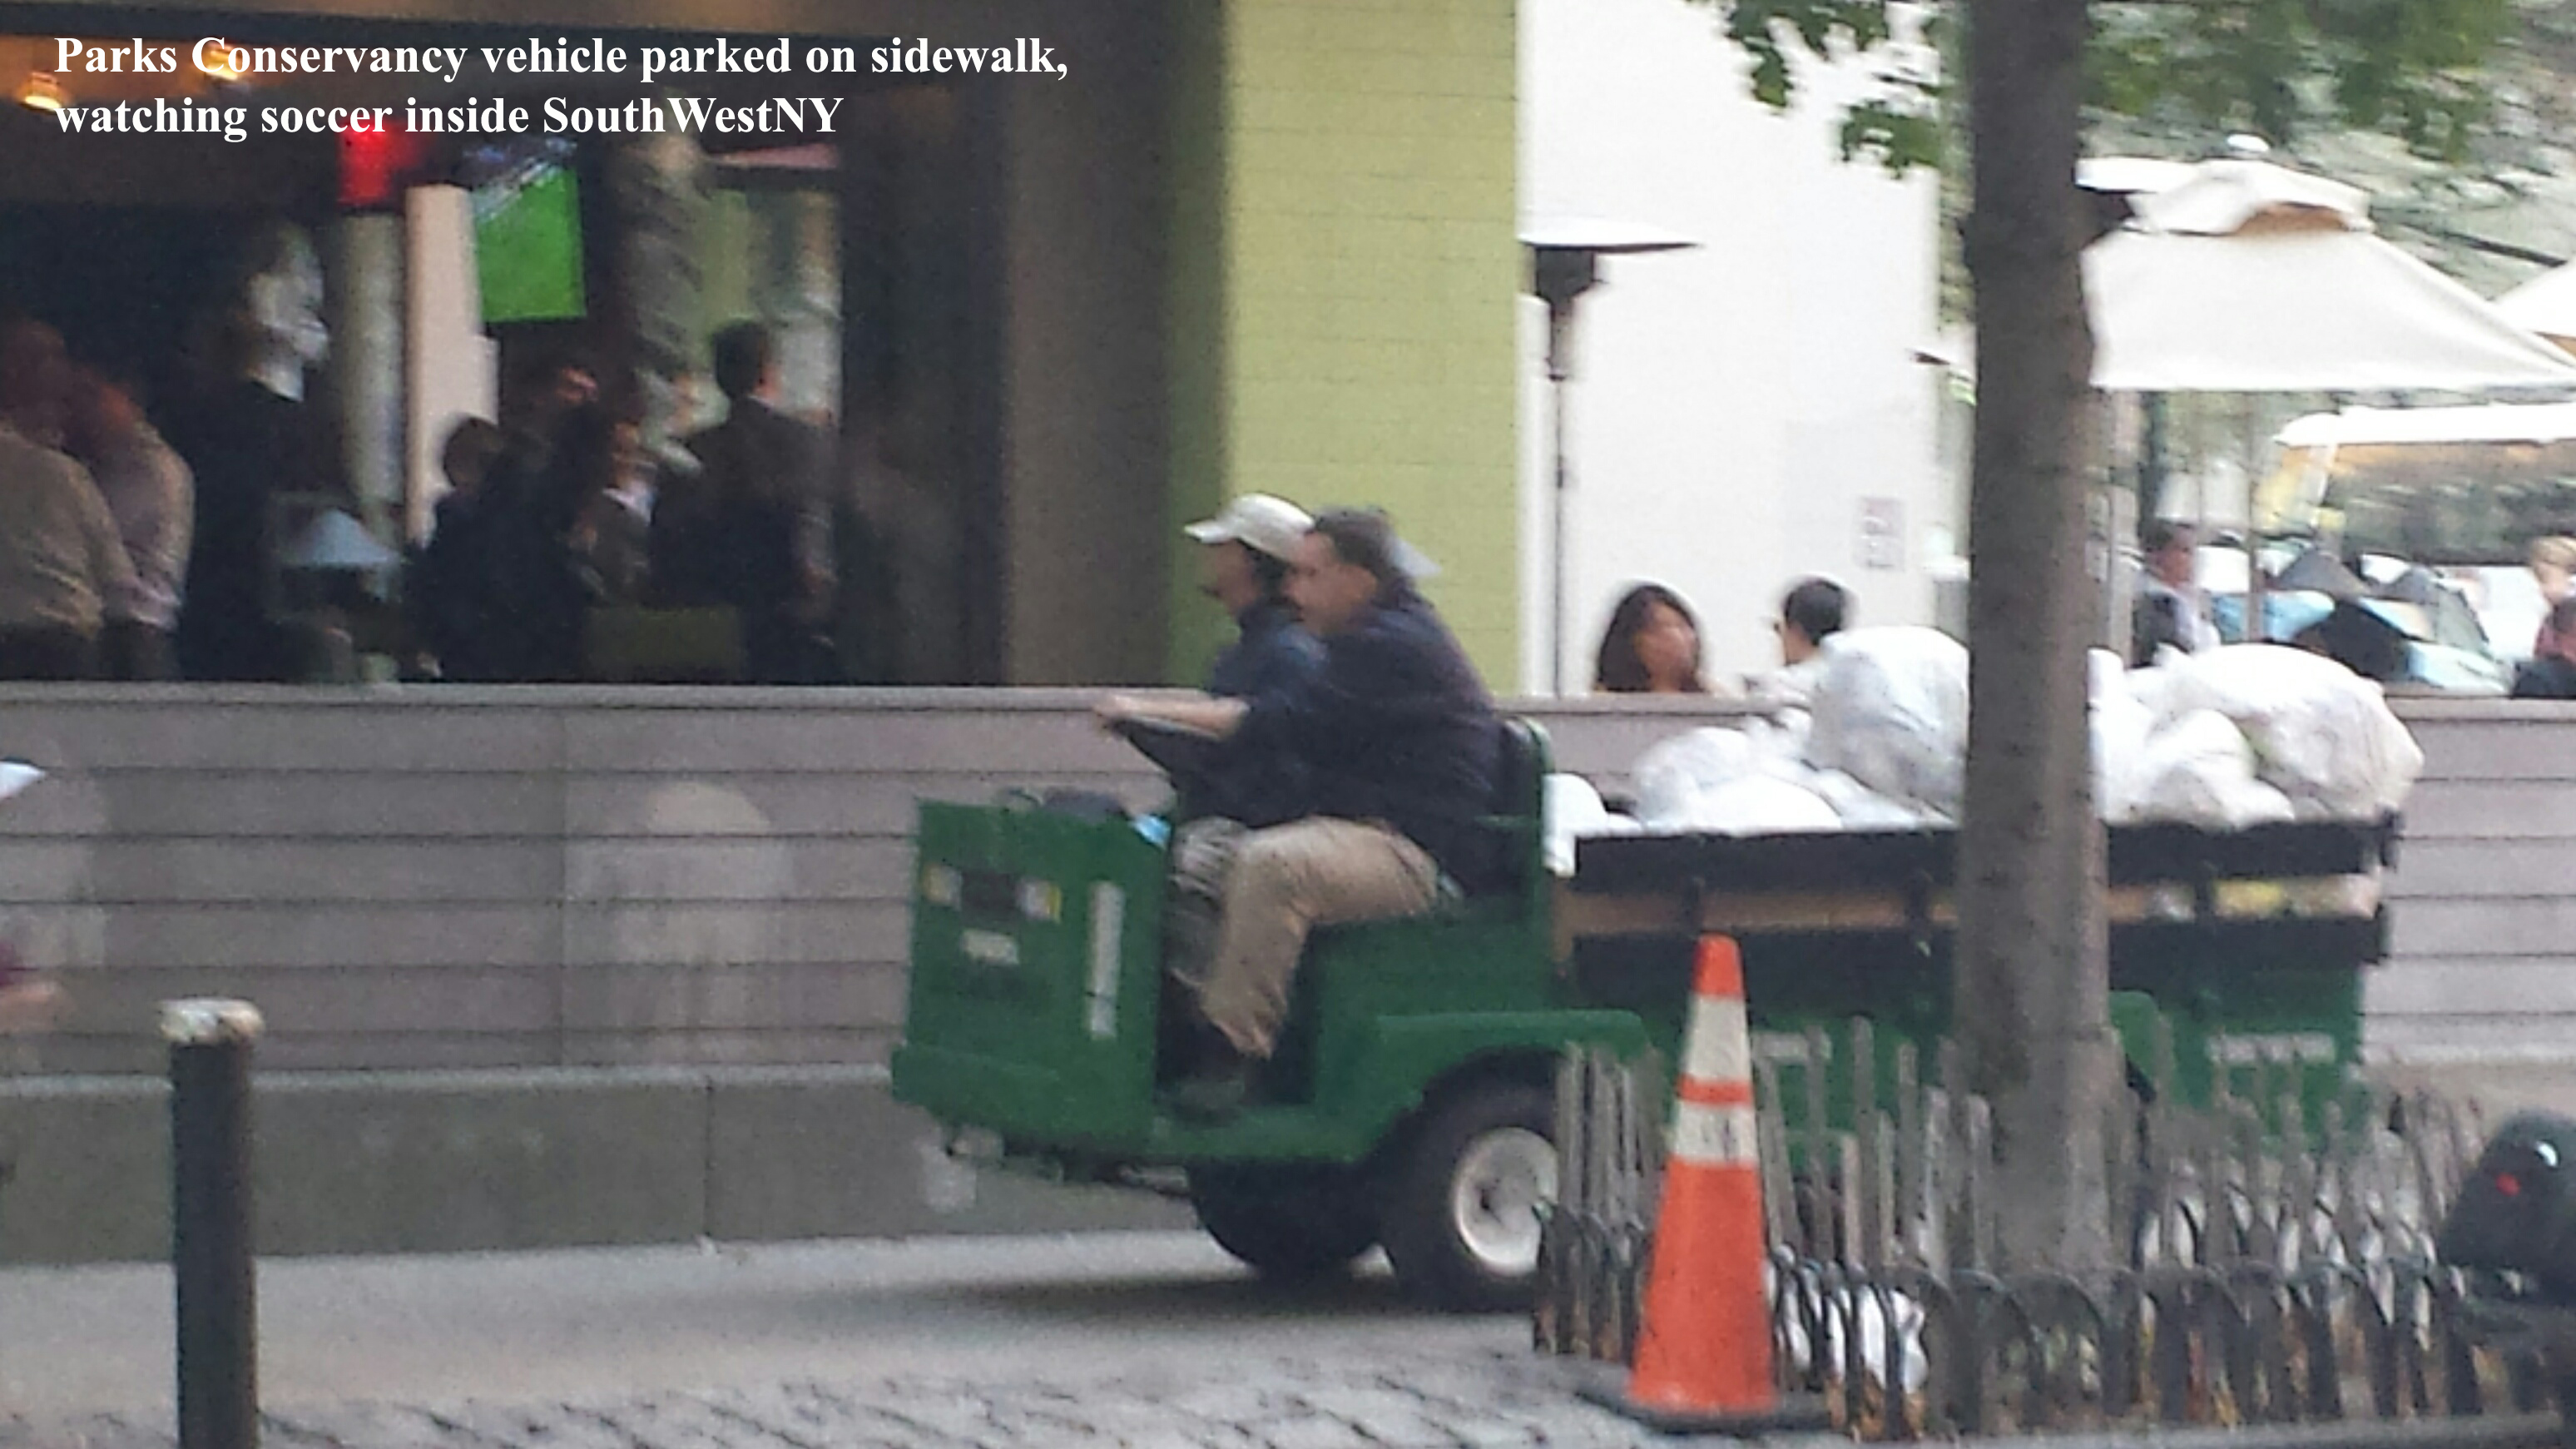 Parks conservancy vehicle on sidewalk